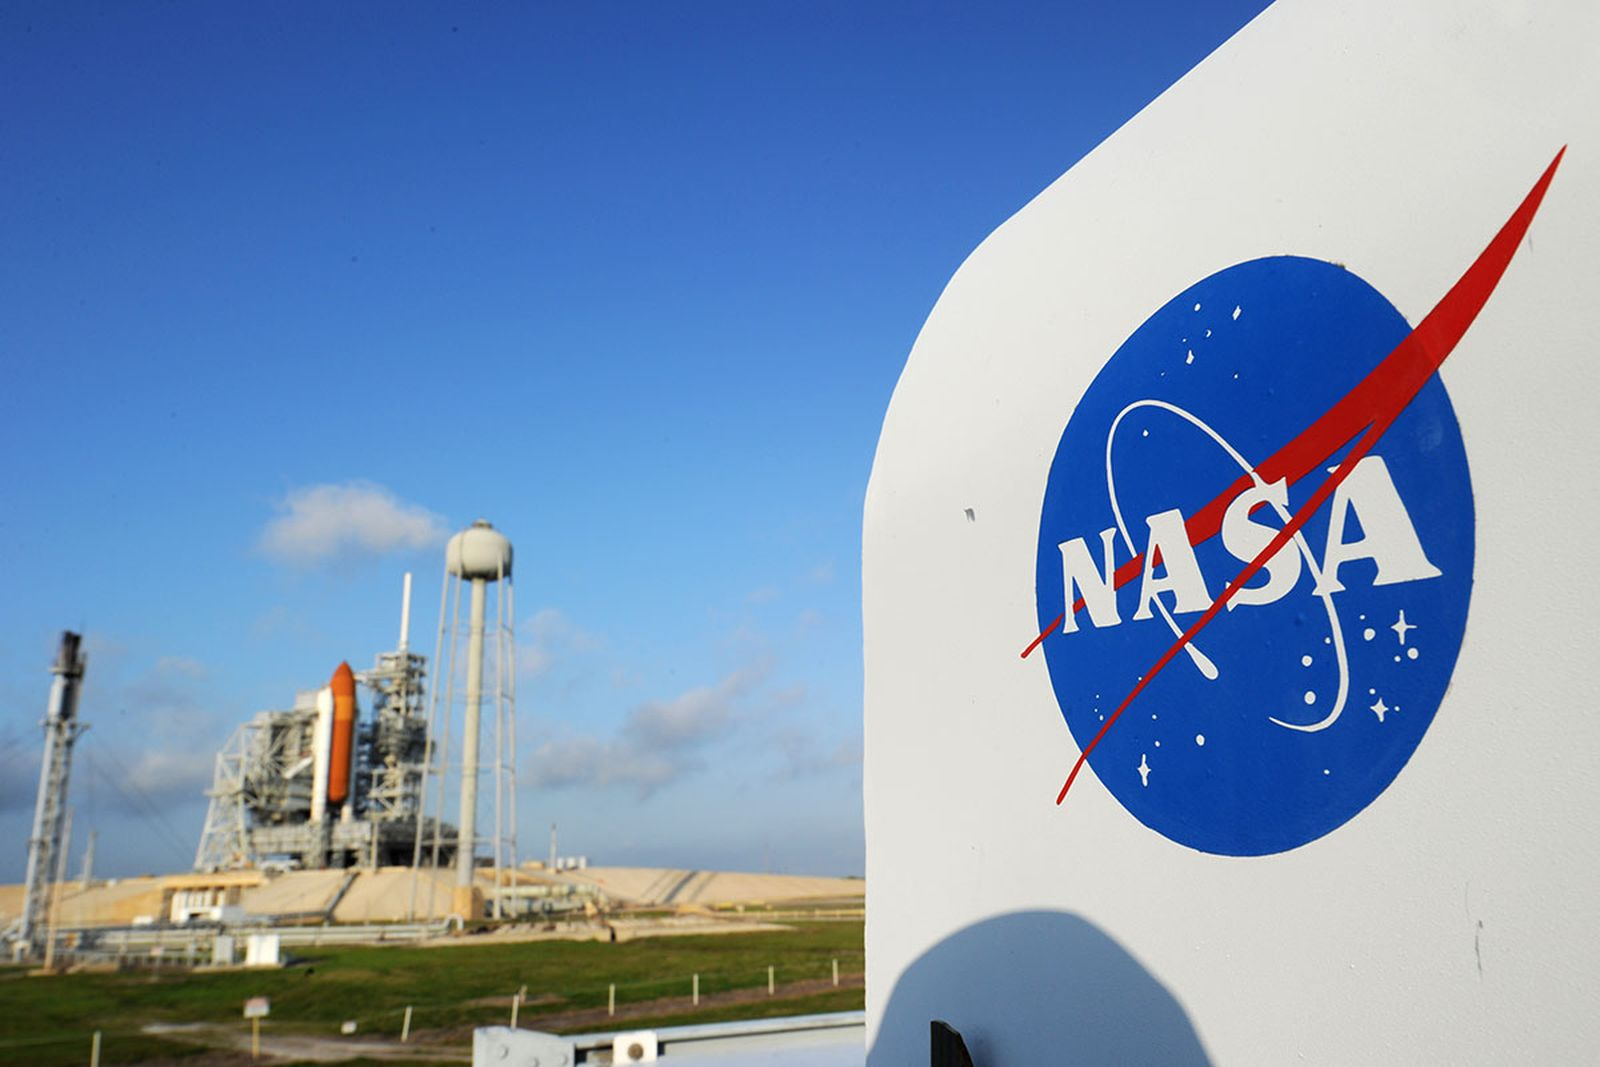 The NASA logo on a protective box for a camera near the space shuttle Endeavour